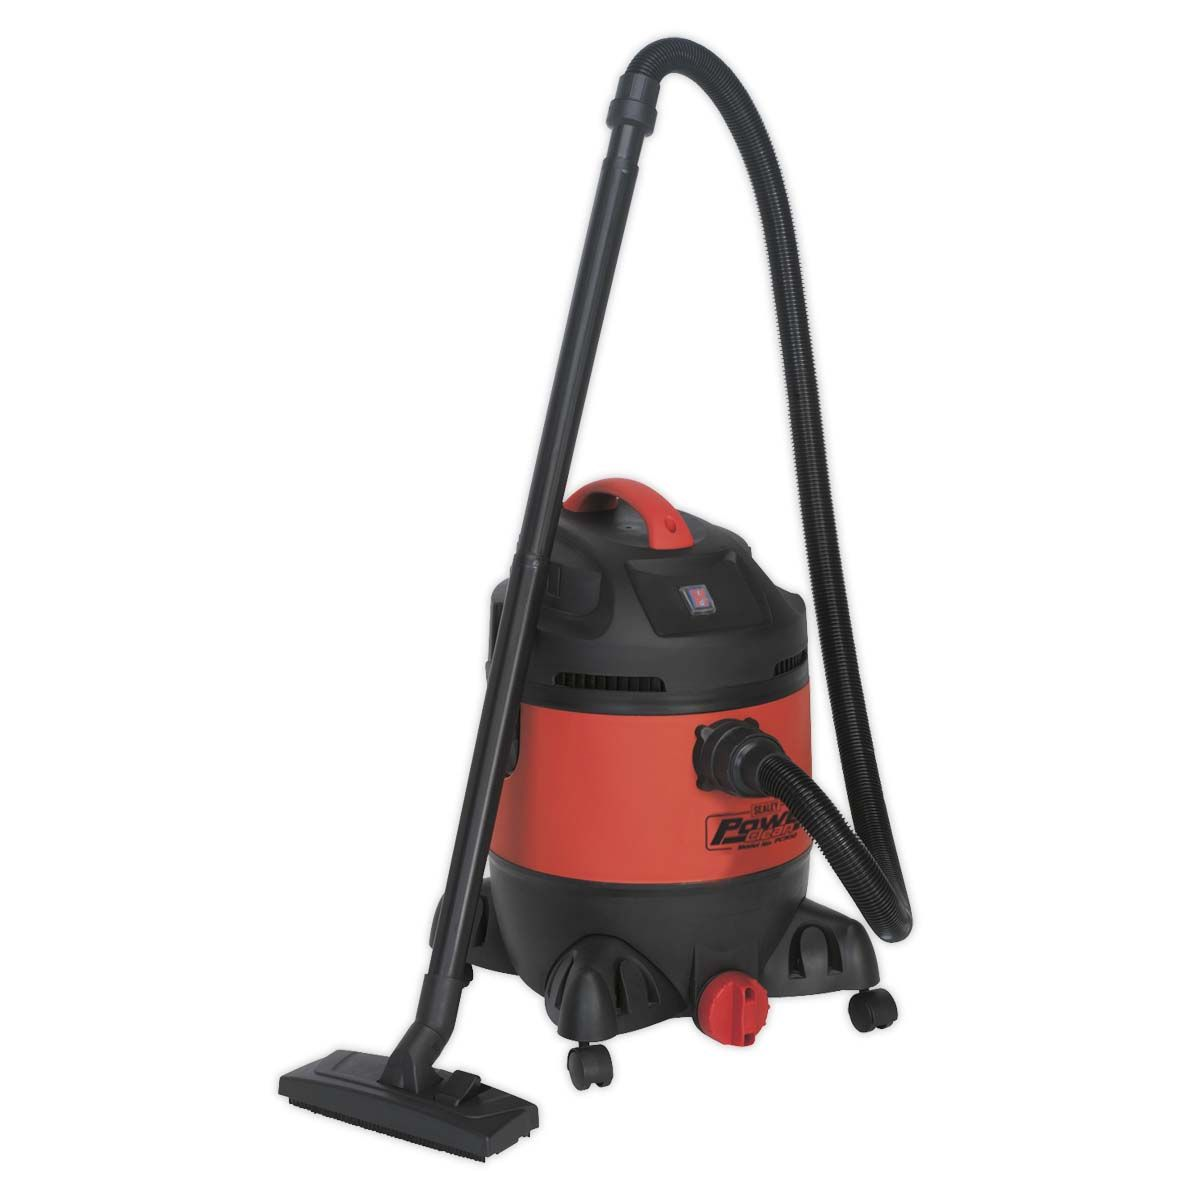 Sealey Vacuum Cleaner Wet & Dry 30L 1400W/230V